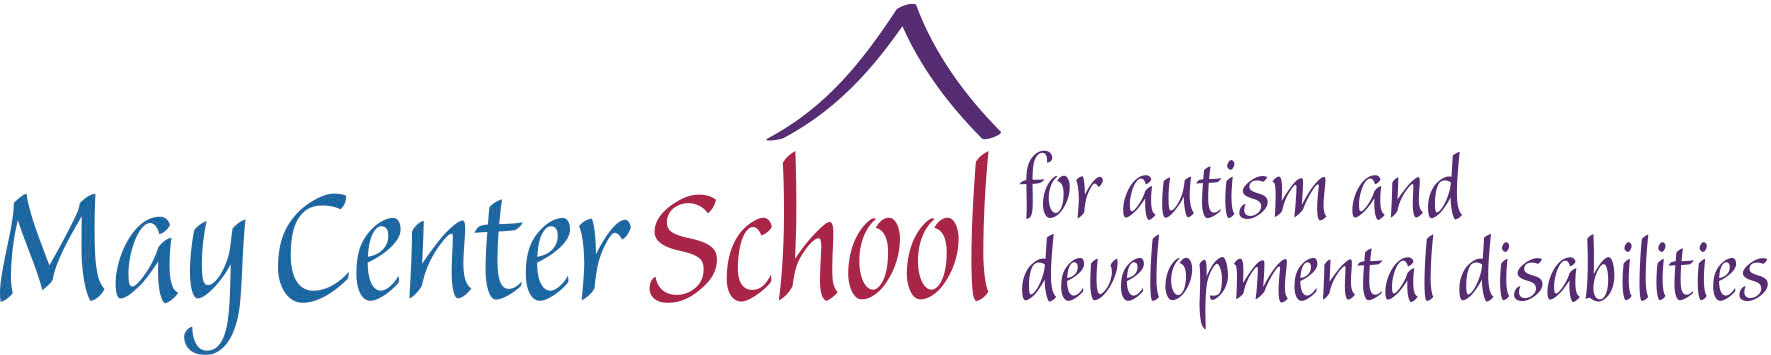 May Center School for autism and development disabilities